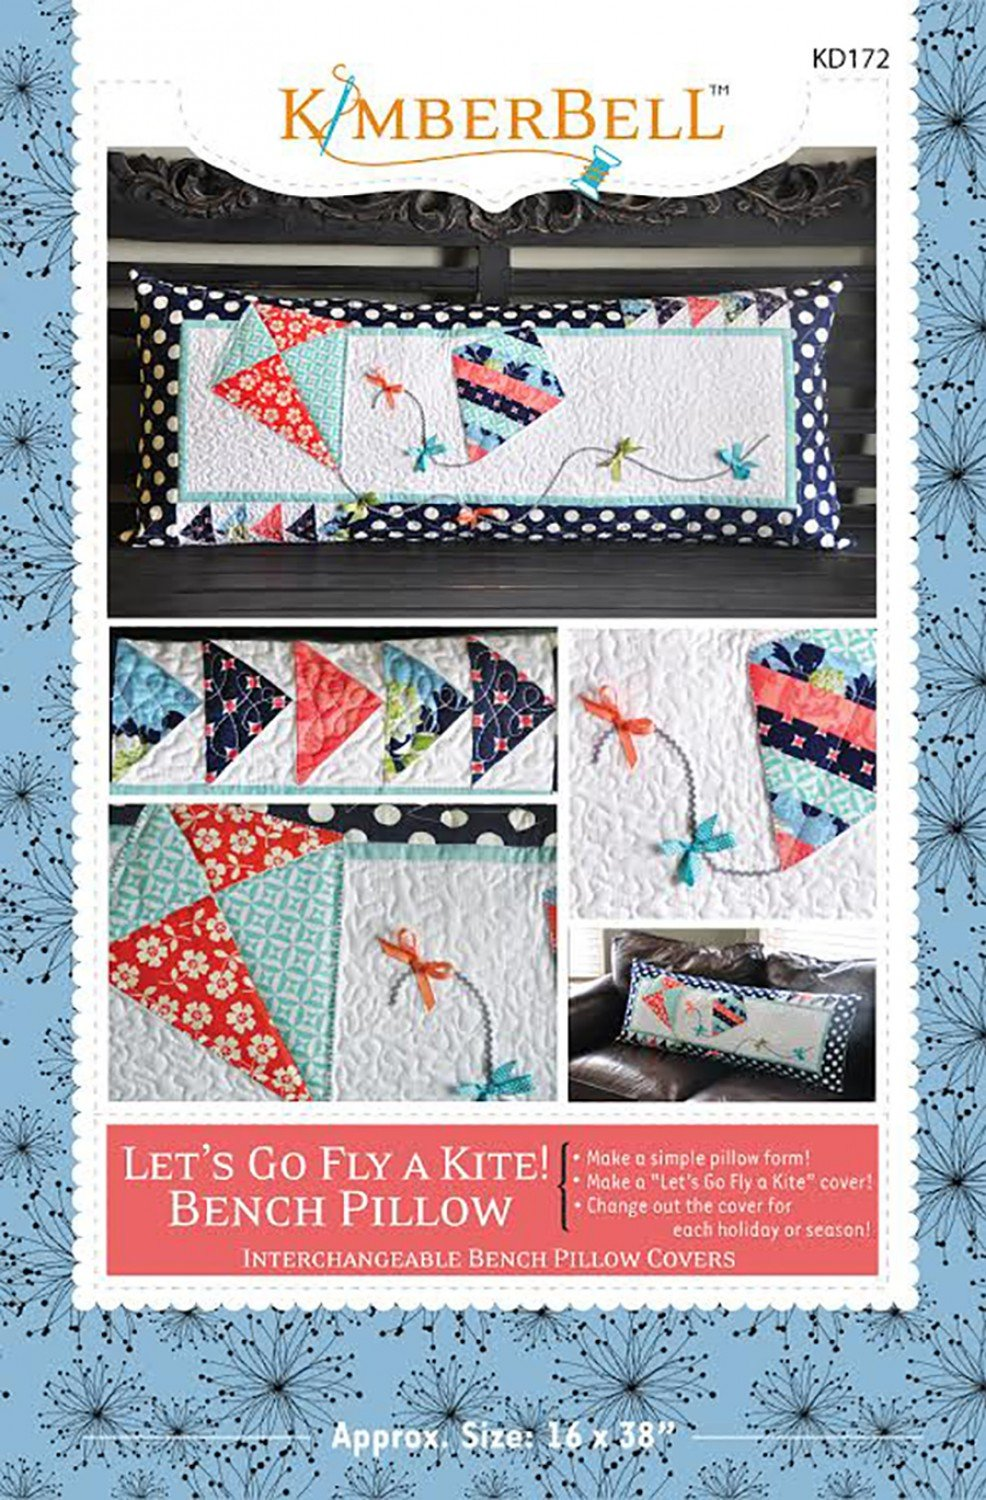 Let's Go Fly A Kite! Bench Pillow Sewing Pattern